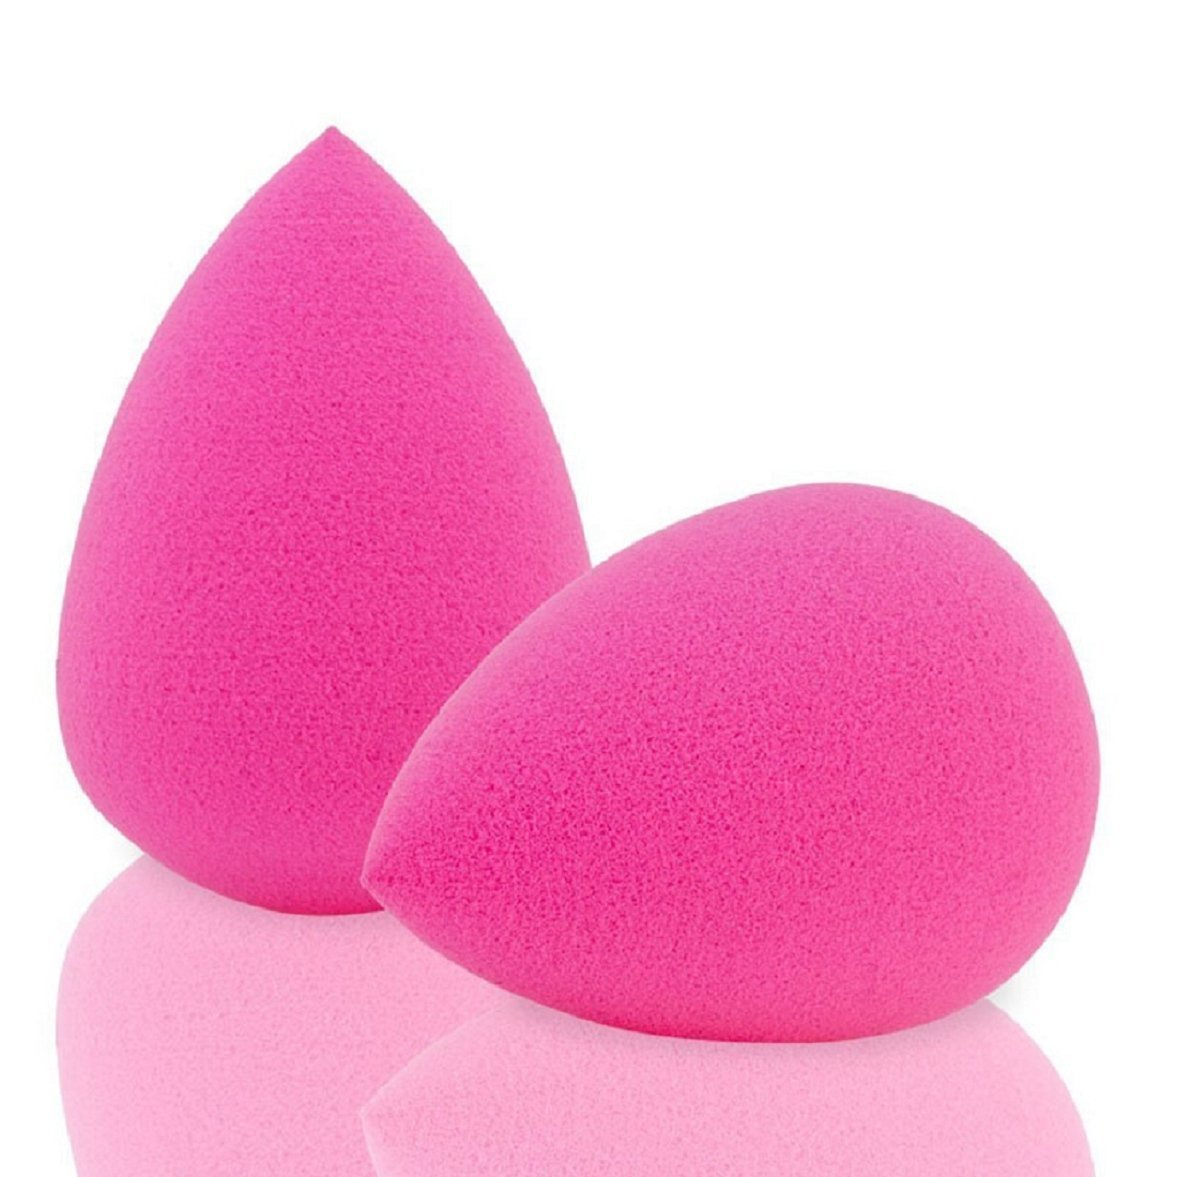 Nicedeal 2Pcs Beauty Sponge Latex Free Blender Makeup Flawless Liquid Foundation Make-up Tools and Brushes for Beauty